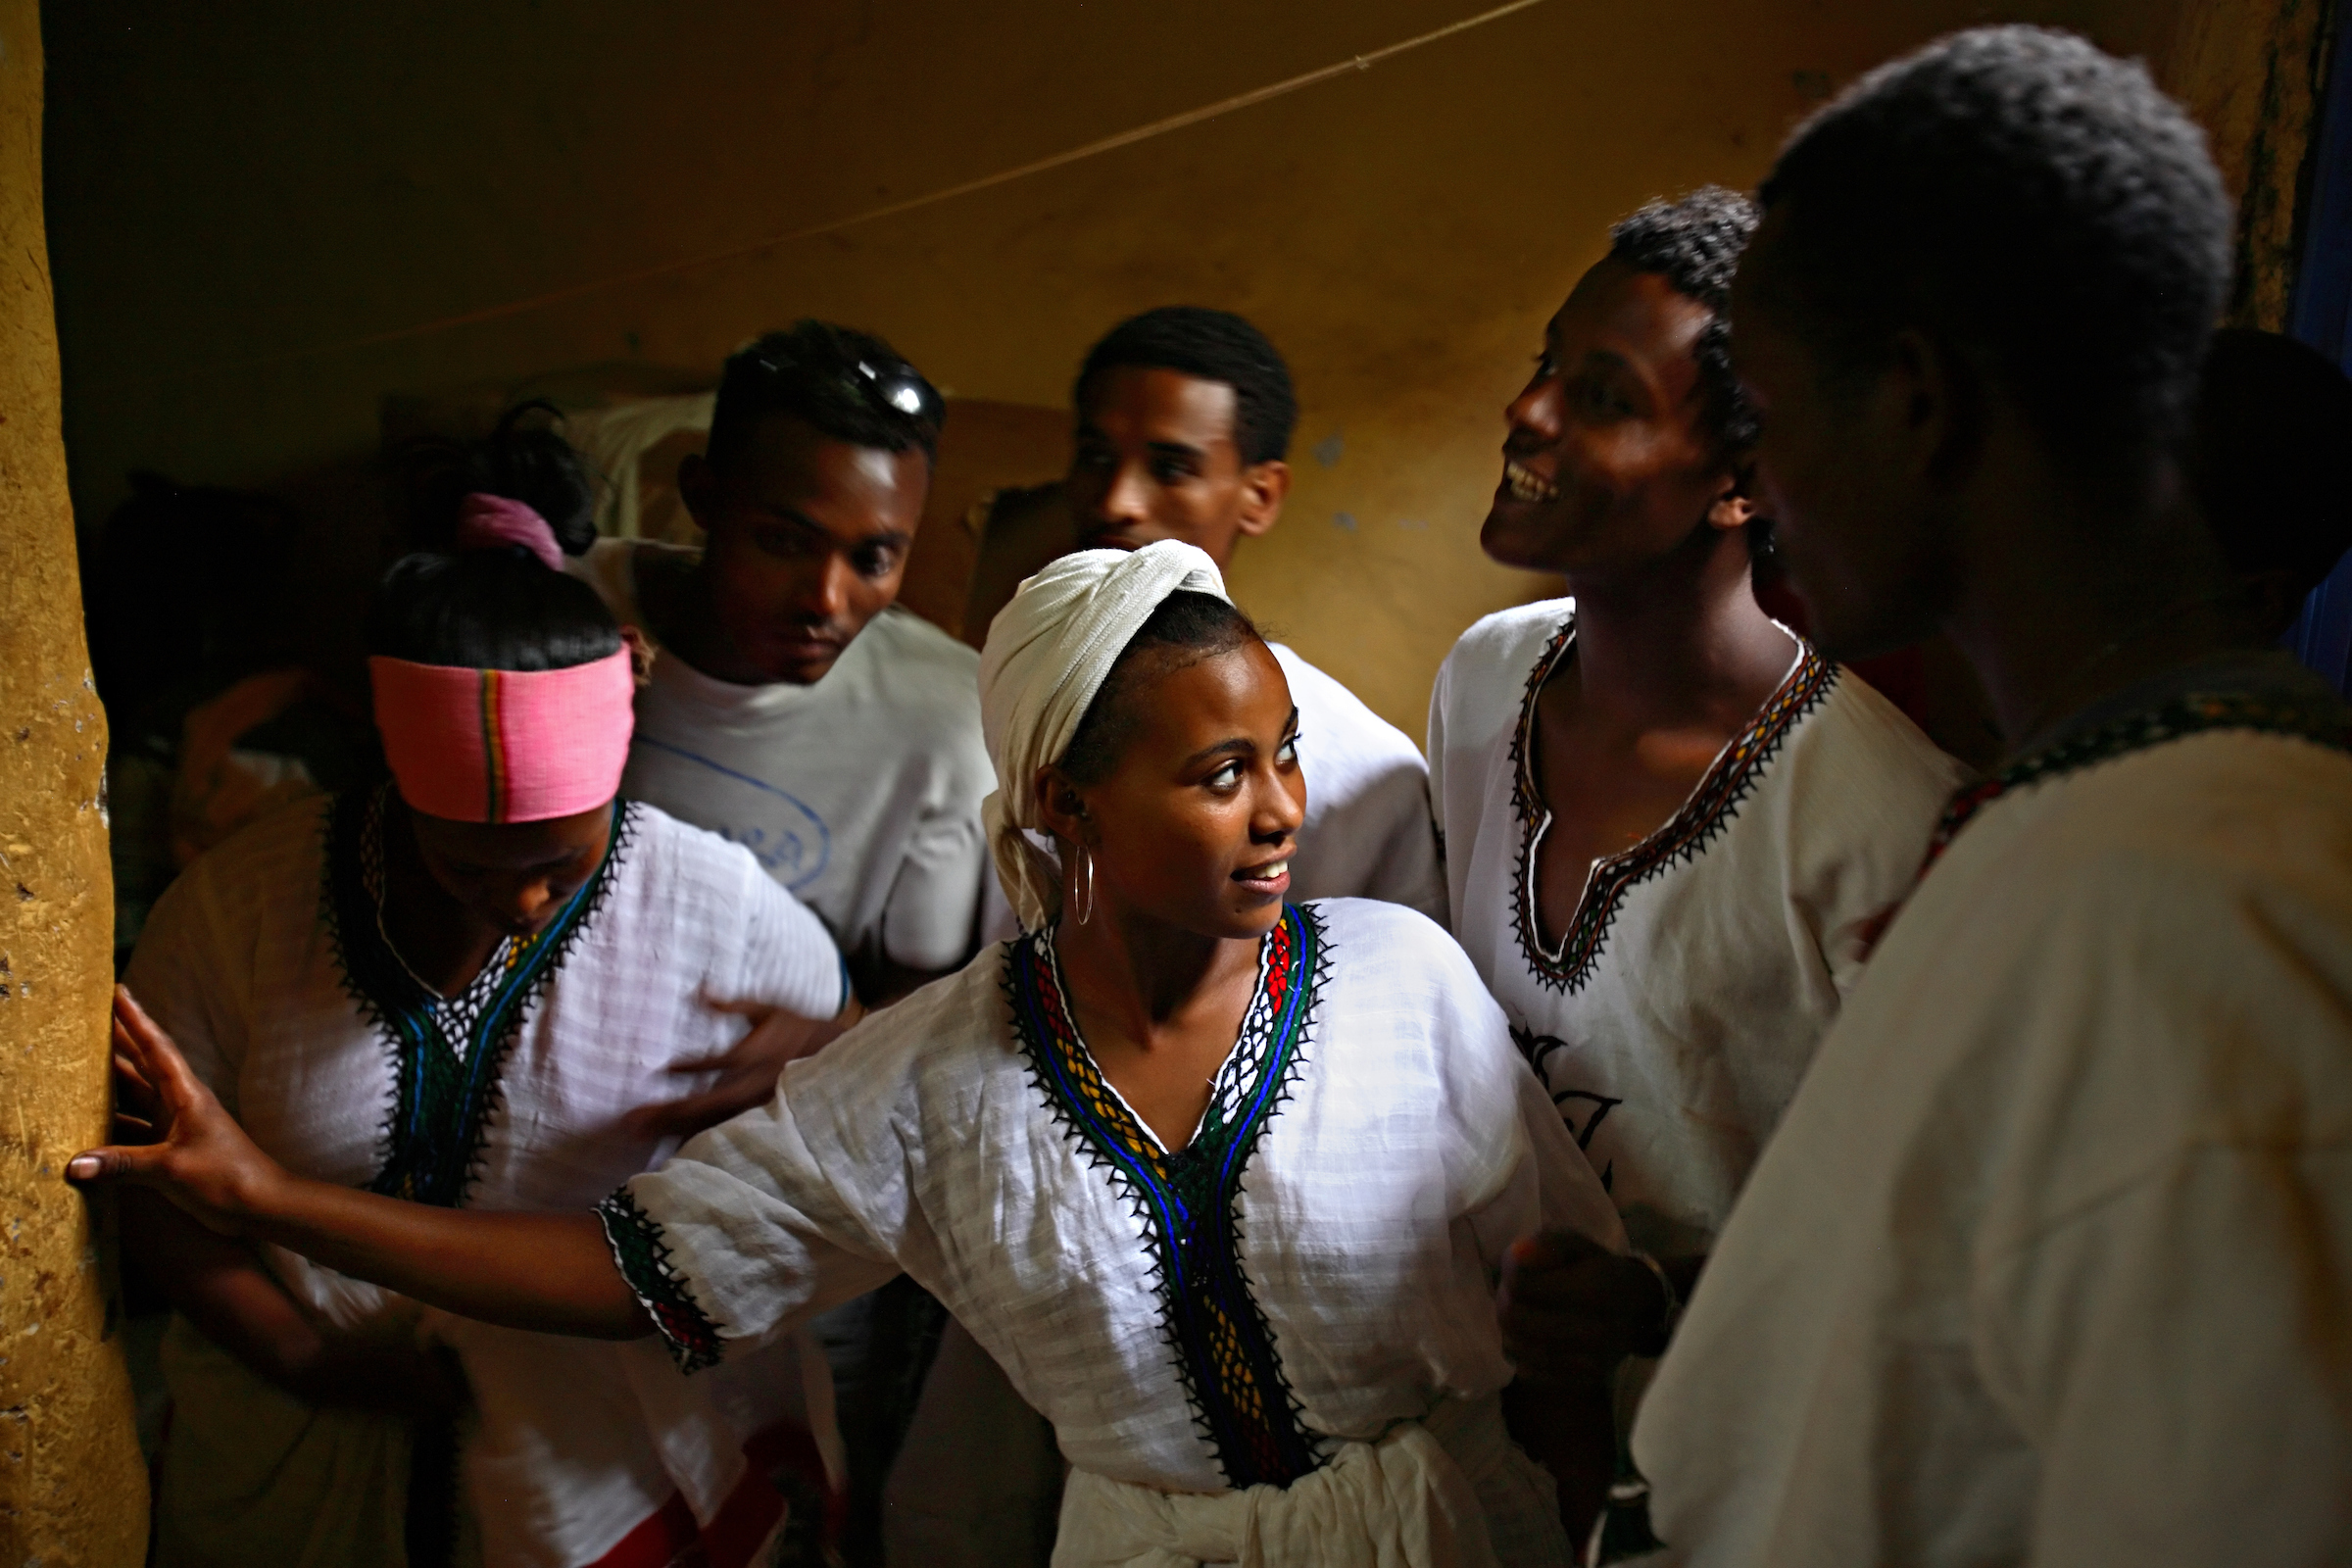 Members of the Fistula Girls Club and the Community-based Reproductive Association,  perform a traditional dance against child marriage in Shende, Ethiopia